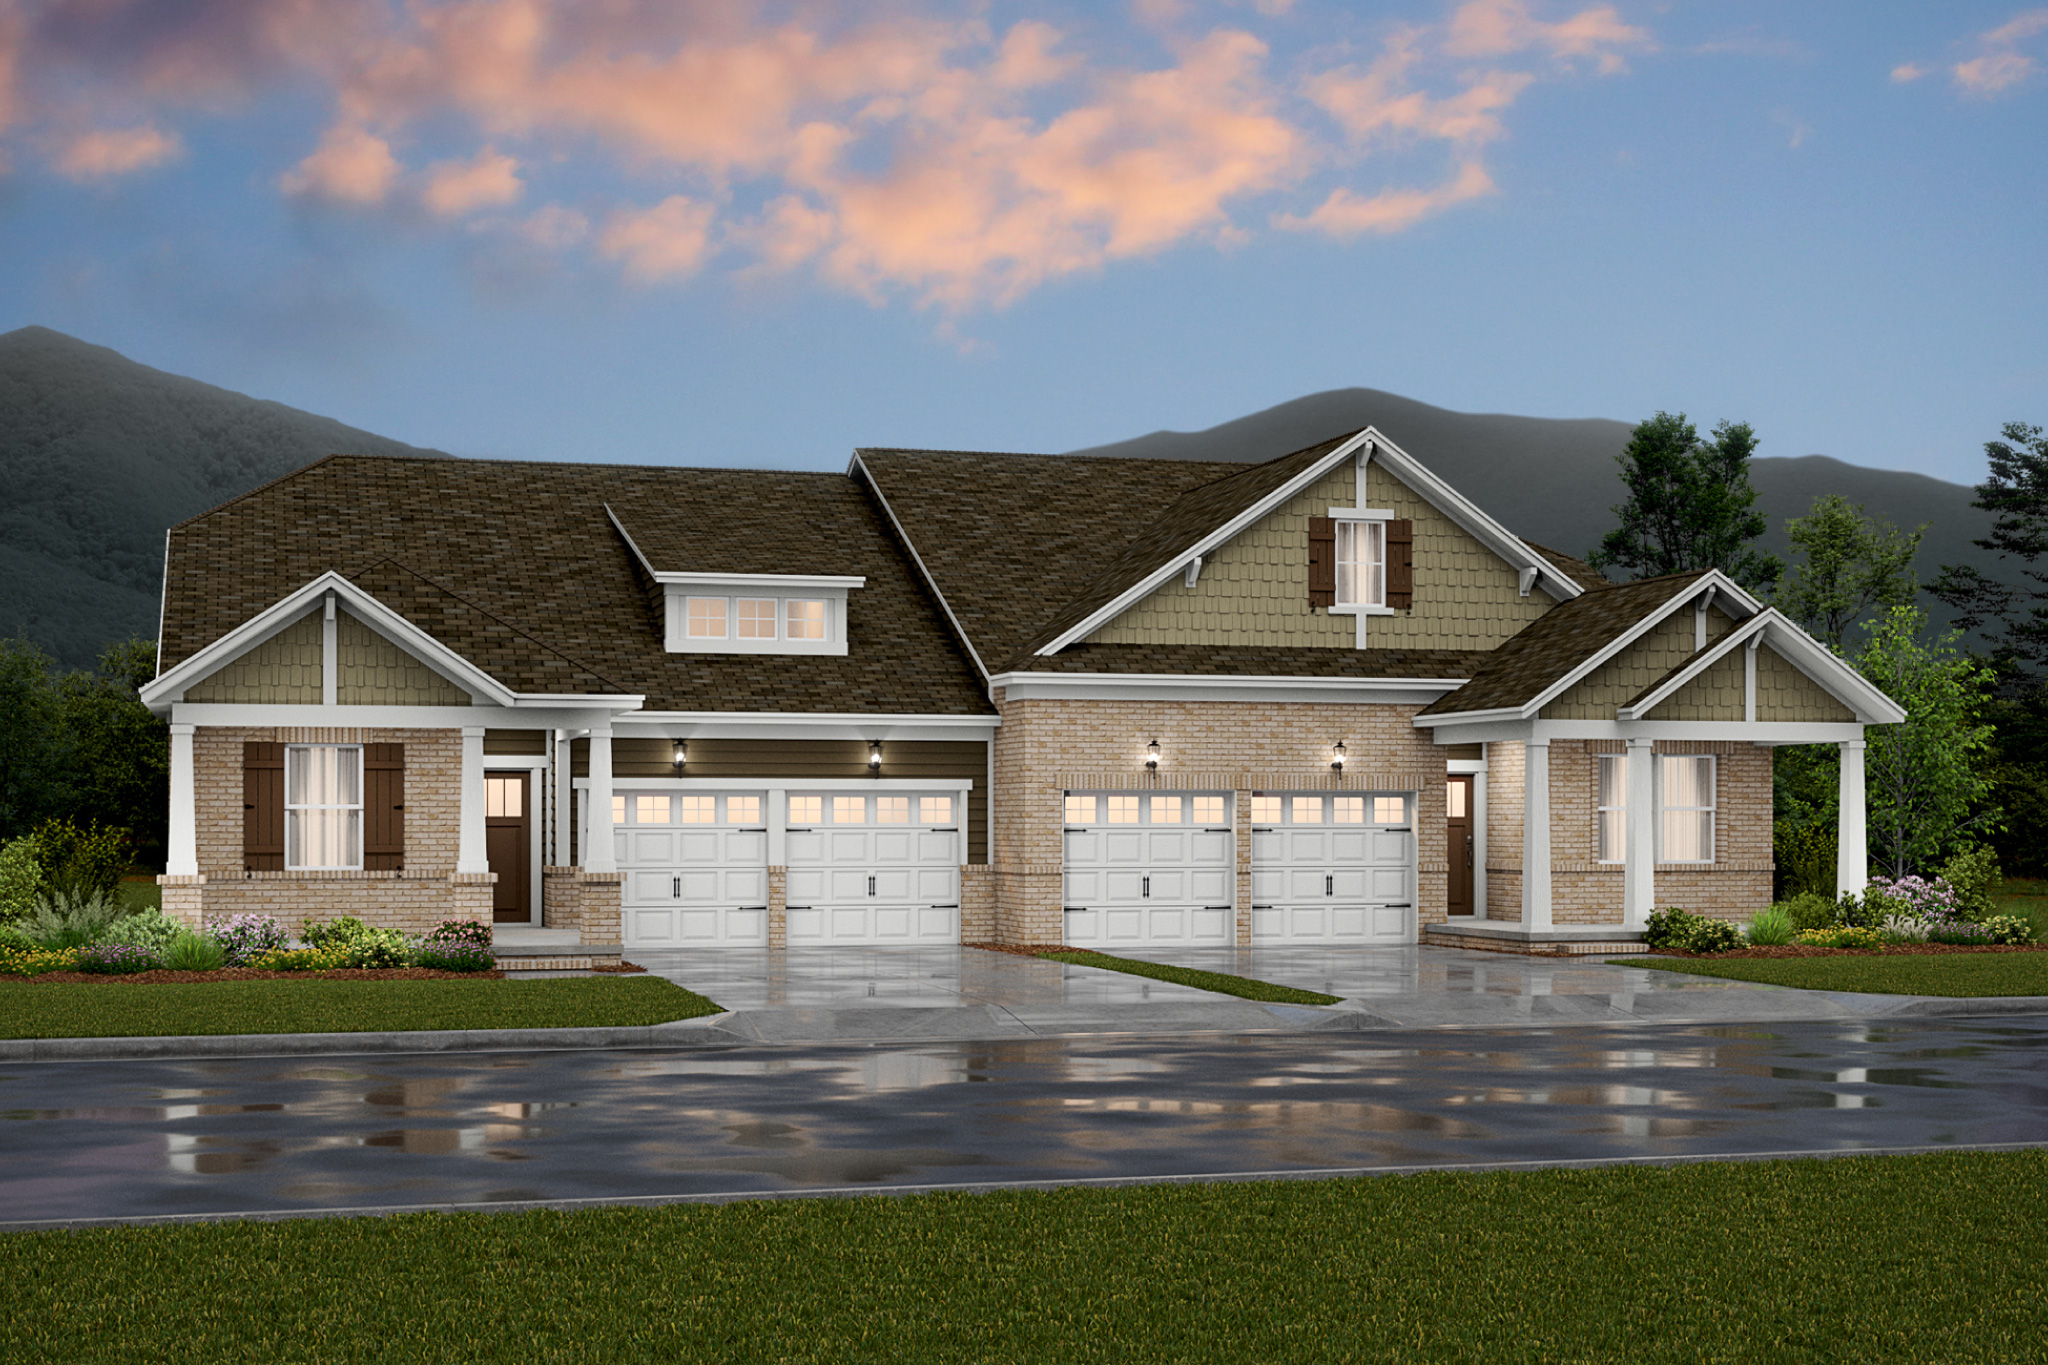 Estate Villas by Lennar - Durham Farms New Homes for Sale in Hendersonville, TN